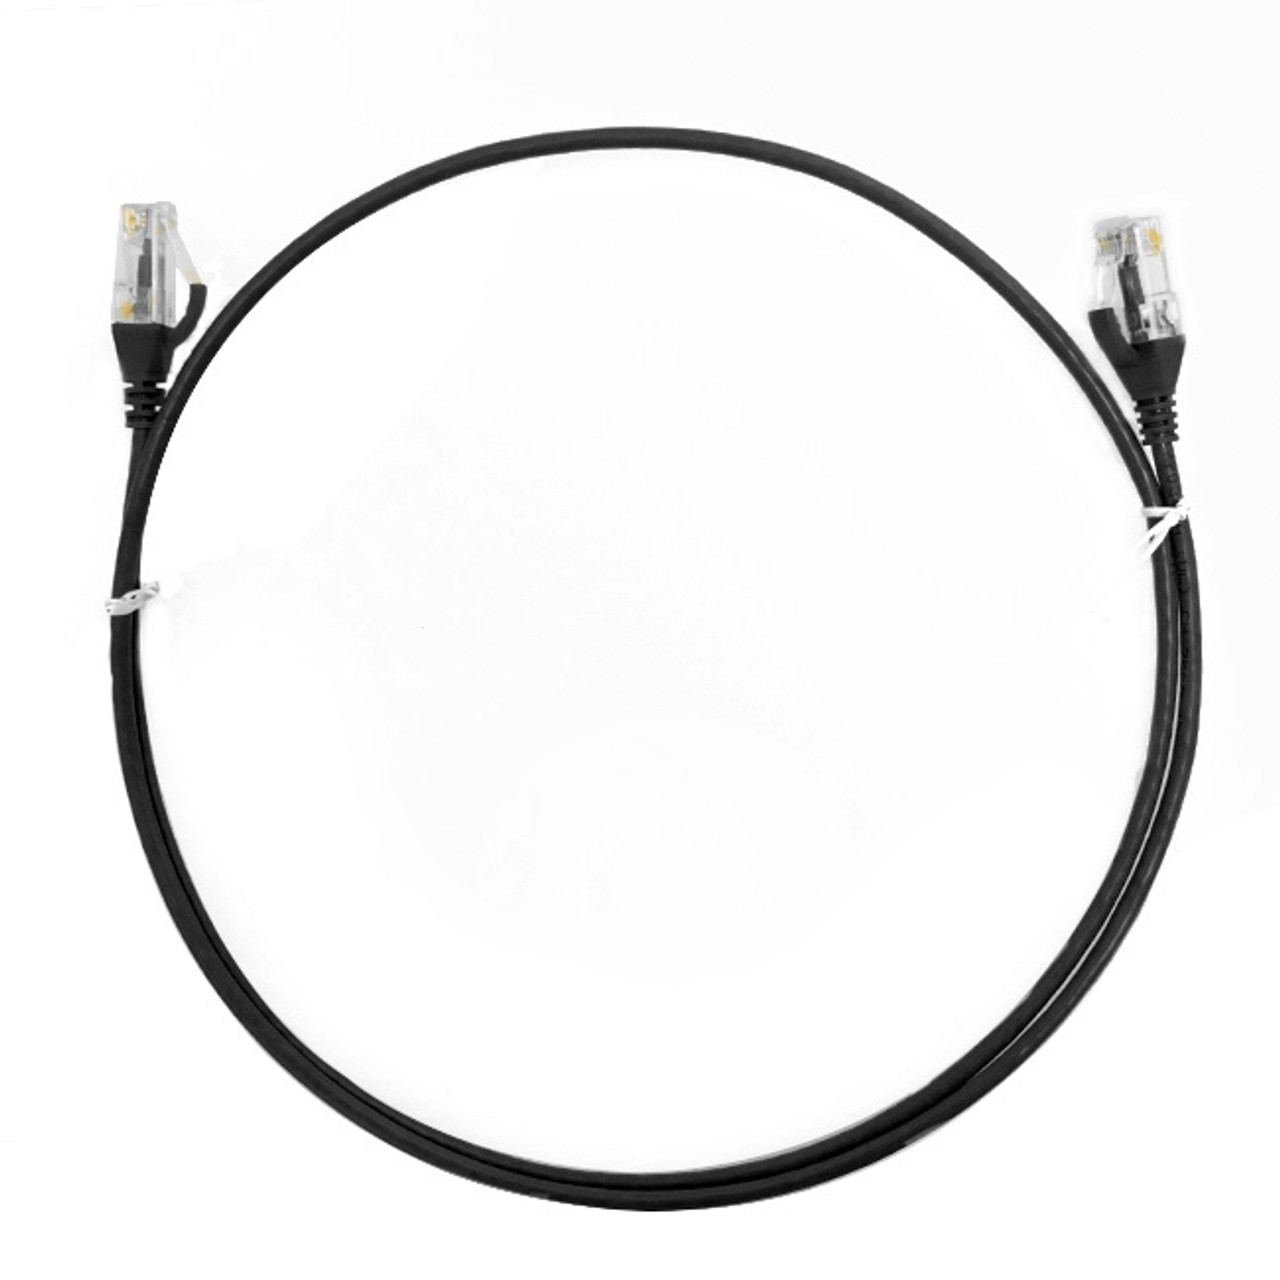 Image for 4m Cat 6 RJ45 RJ45 Ultra Thin LSZH Network Cables  : Black CX Computer Superstore